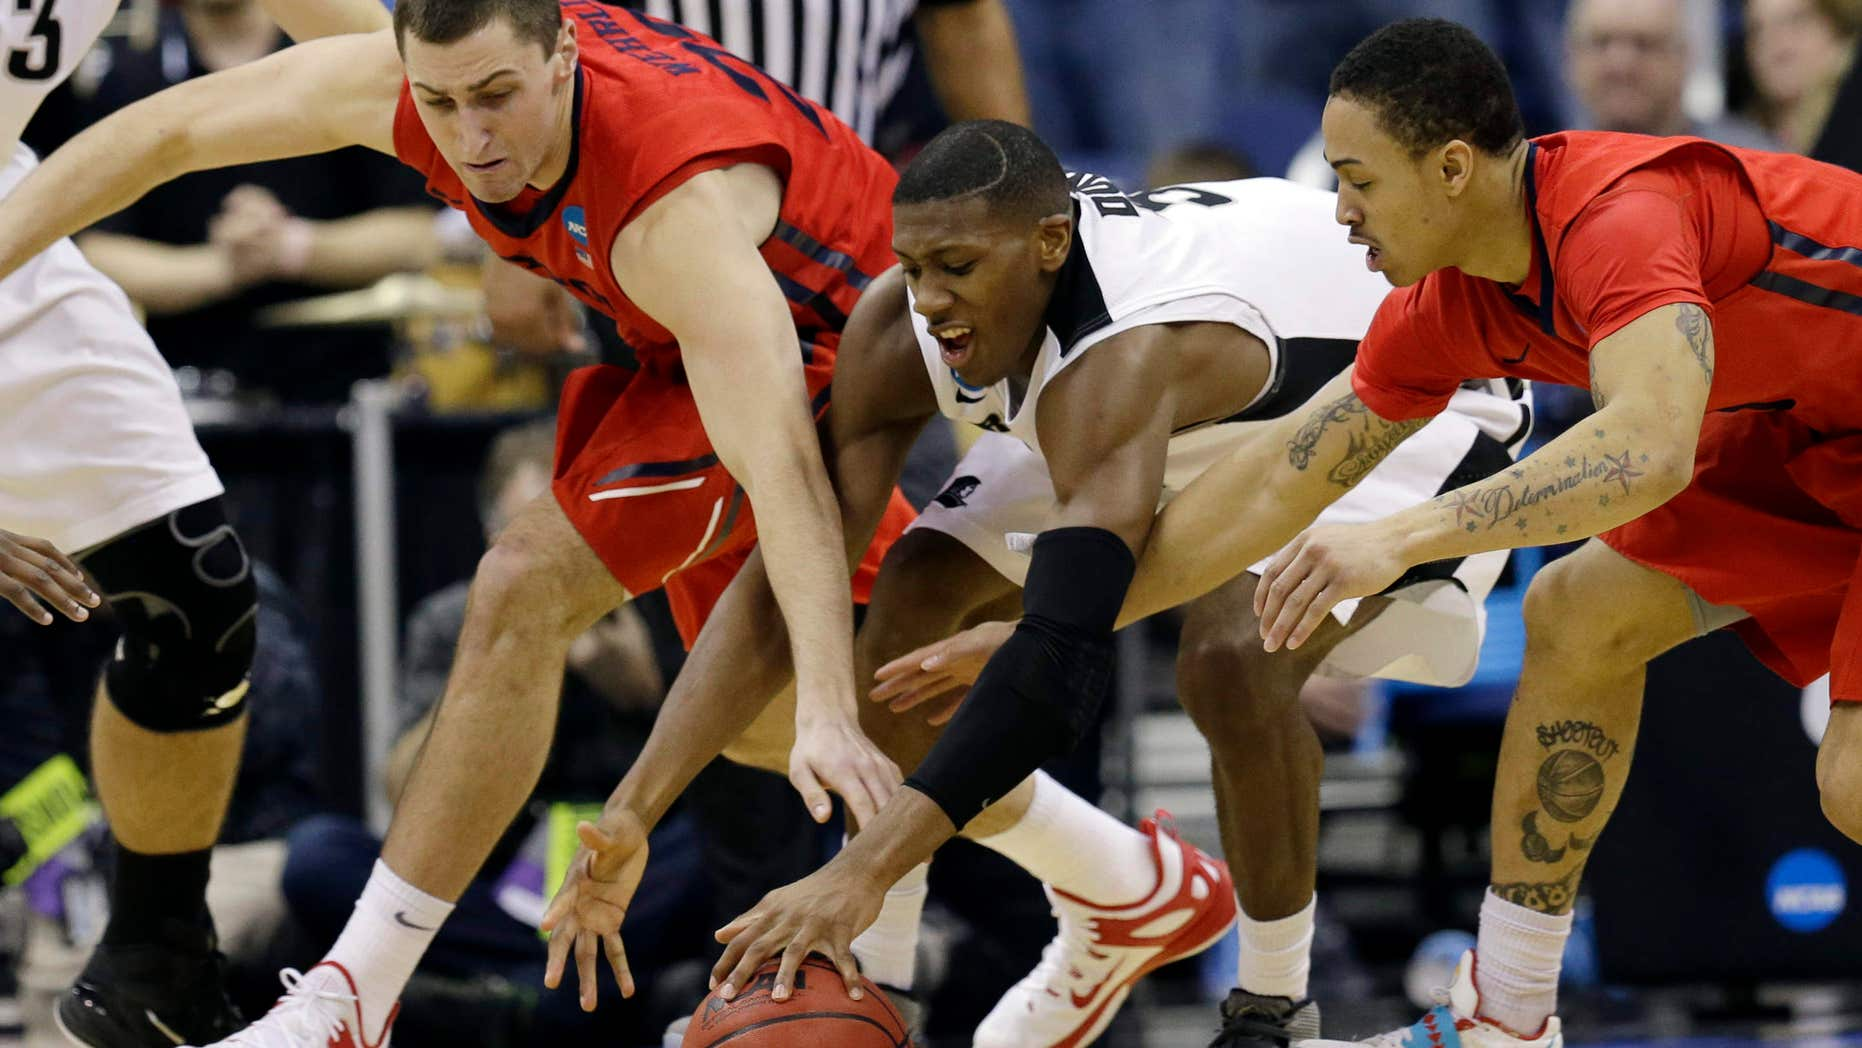 March 21, 2015: Dayton's Bobby Wehrli, left, and Kyle Davis, right, go for a loose ball against Providence's Kris Dunn in the second half of an NCAA tournament college basketball game in the Round of 64 in Columbus, Ohio.